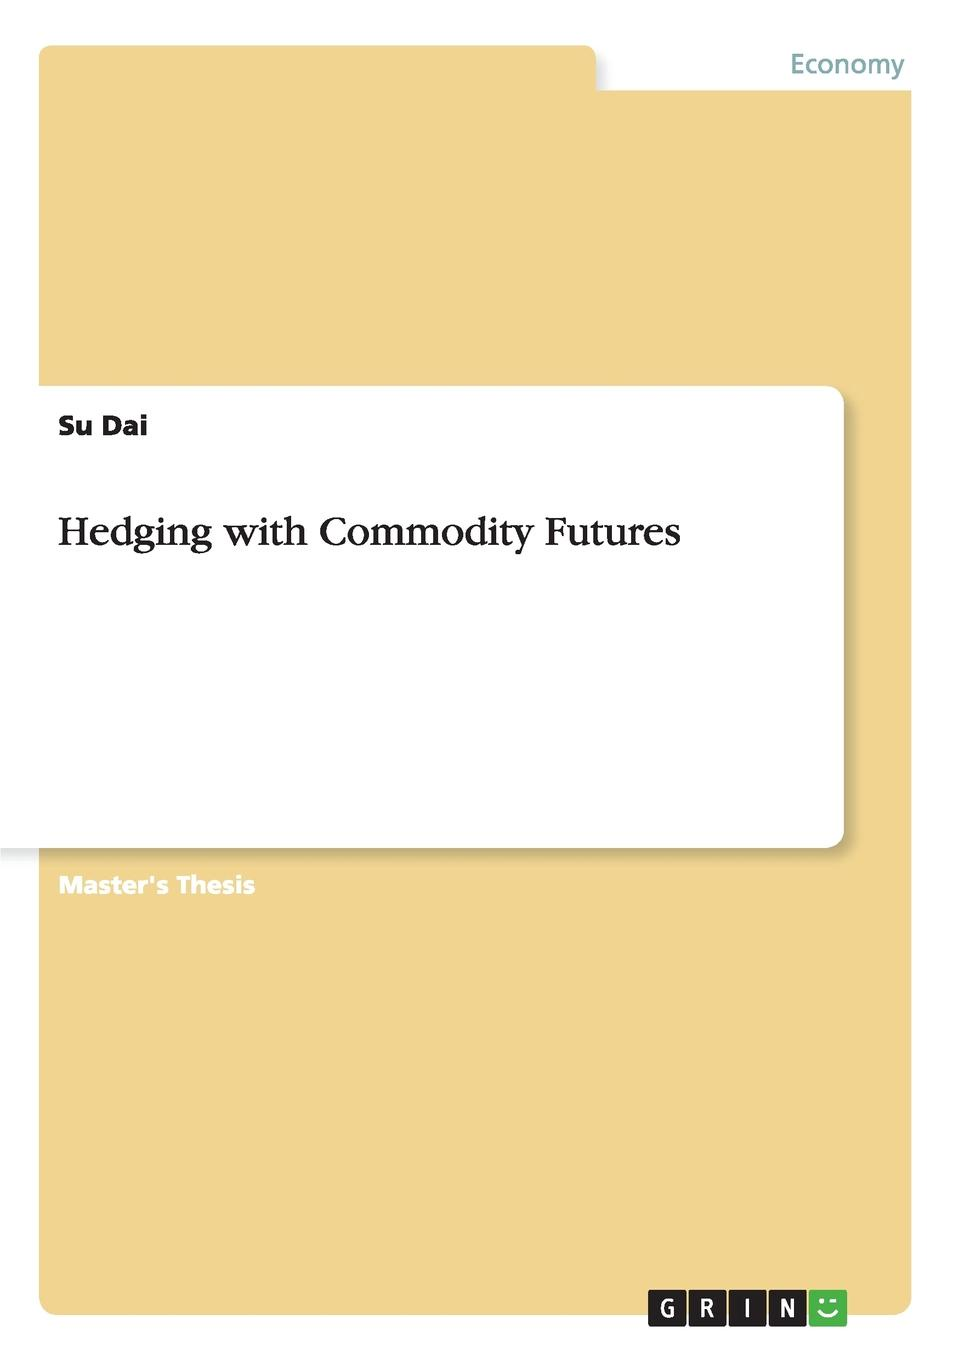 Su Dai Hedging with Commodity Futures cooper rachel constructing futures industry leaders and futures thinking in construction isbn 9781444327847